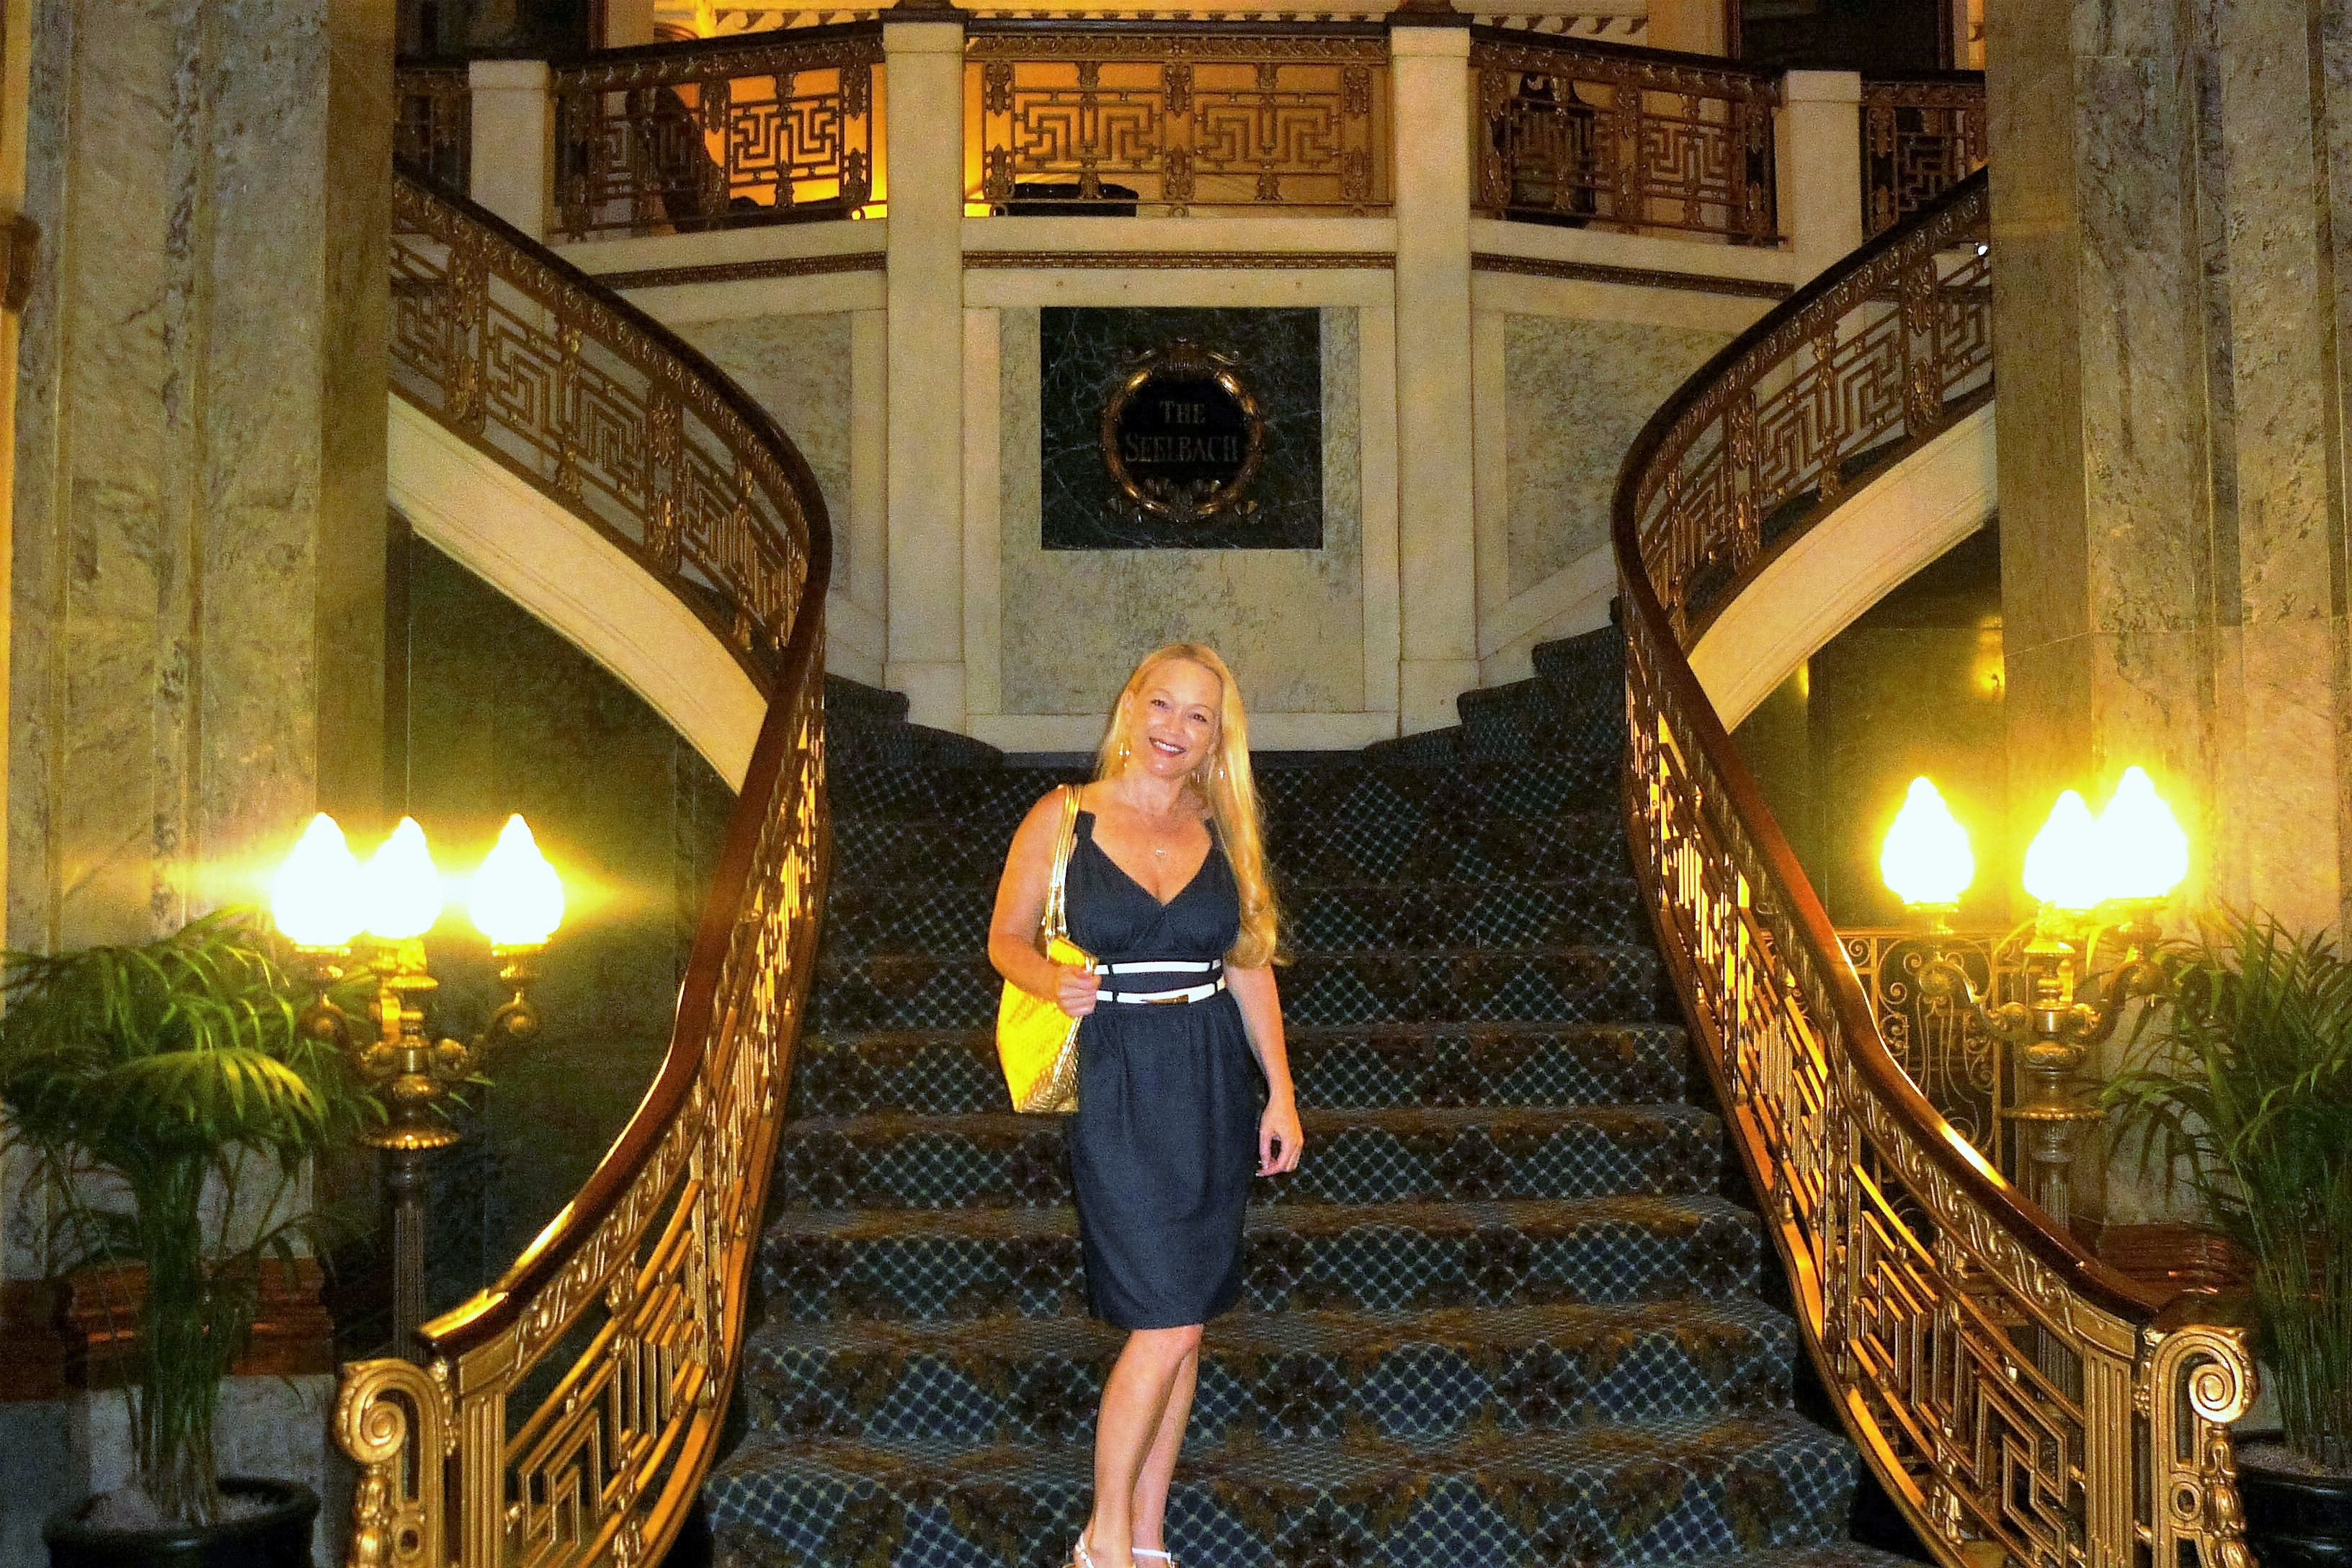 Historic Seelbach Hilton Hotel in Louisville, Kentucky